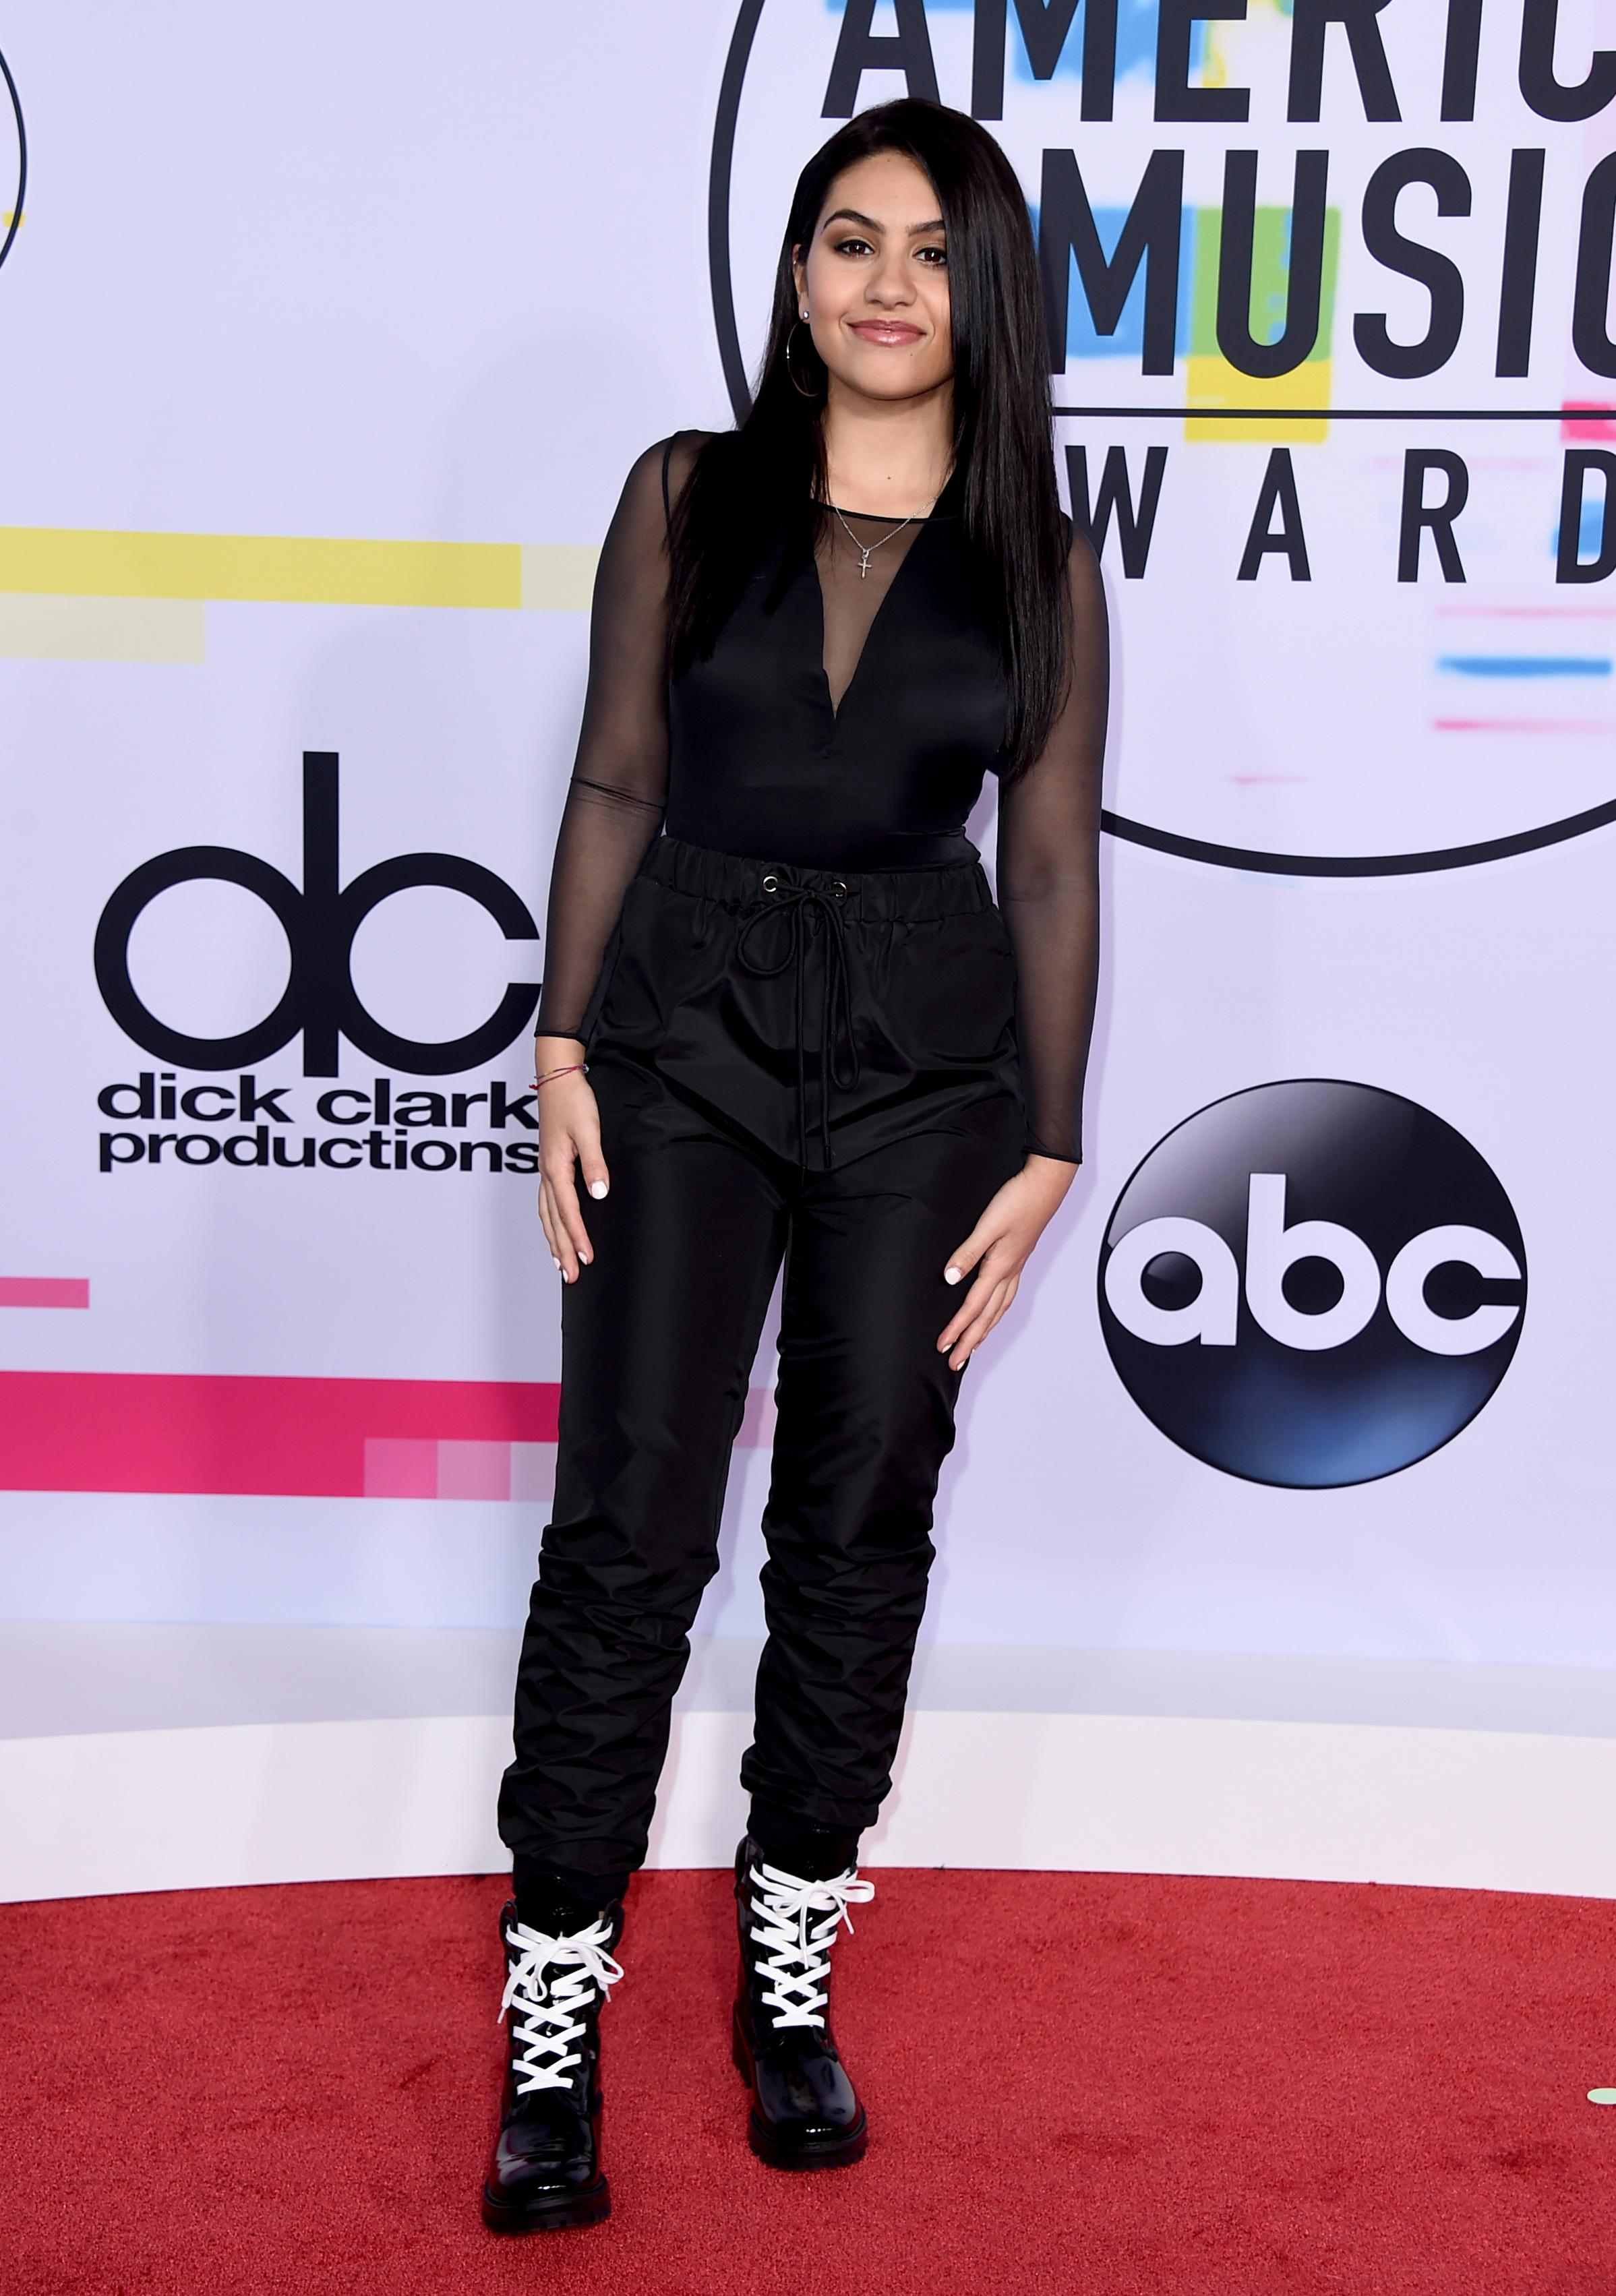 Alessia Cara arrives at the American Music Awards at the Microsoft Theater on Sunday, Nov. 19, 2017, in Los Angeles. (Photo by Jordan Strauss/Invision/AP)